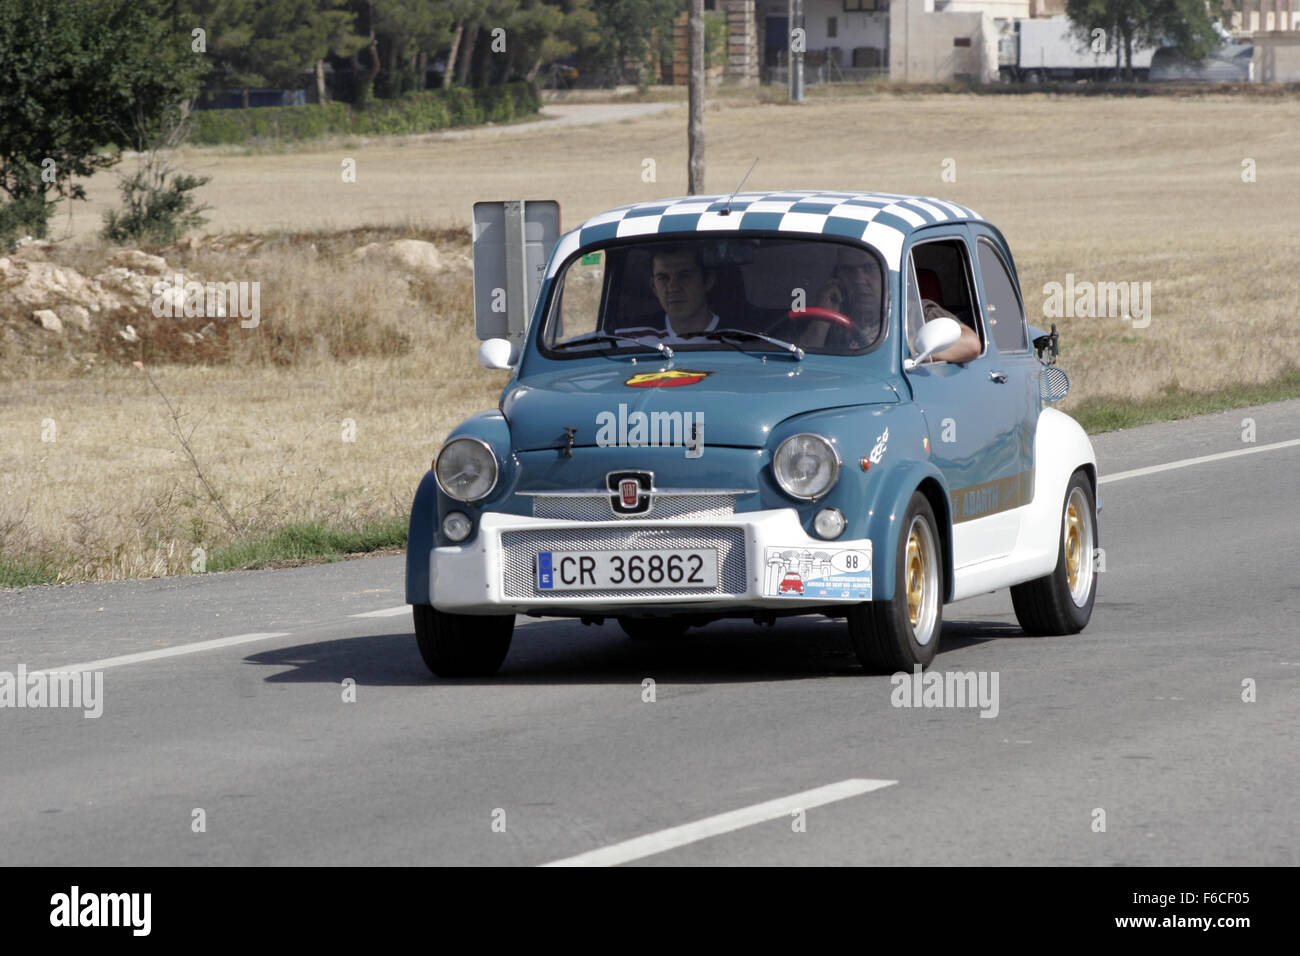 Albacete Circuit : Classical seat 600 car meeting in albacete spain. fiat abarth stock